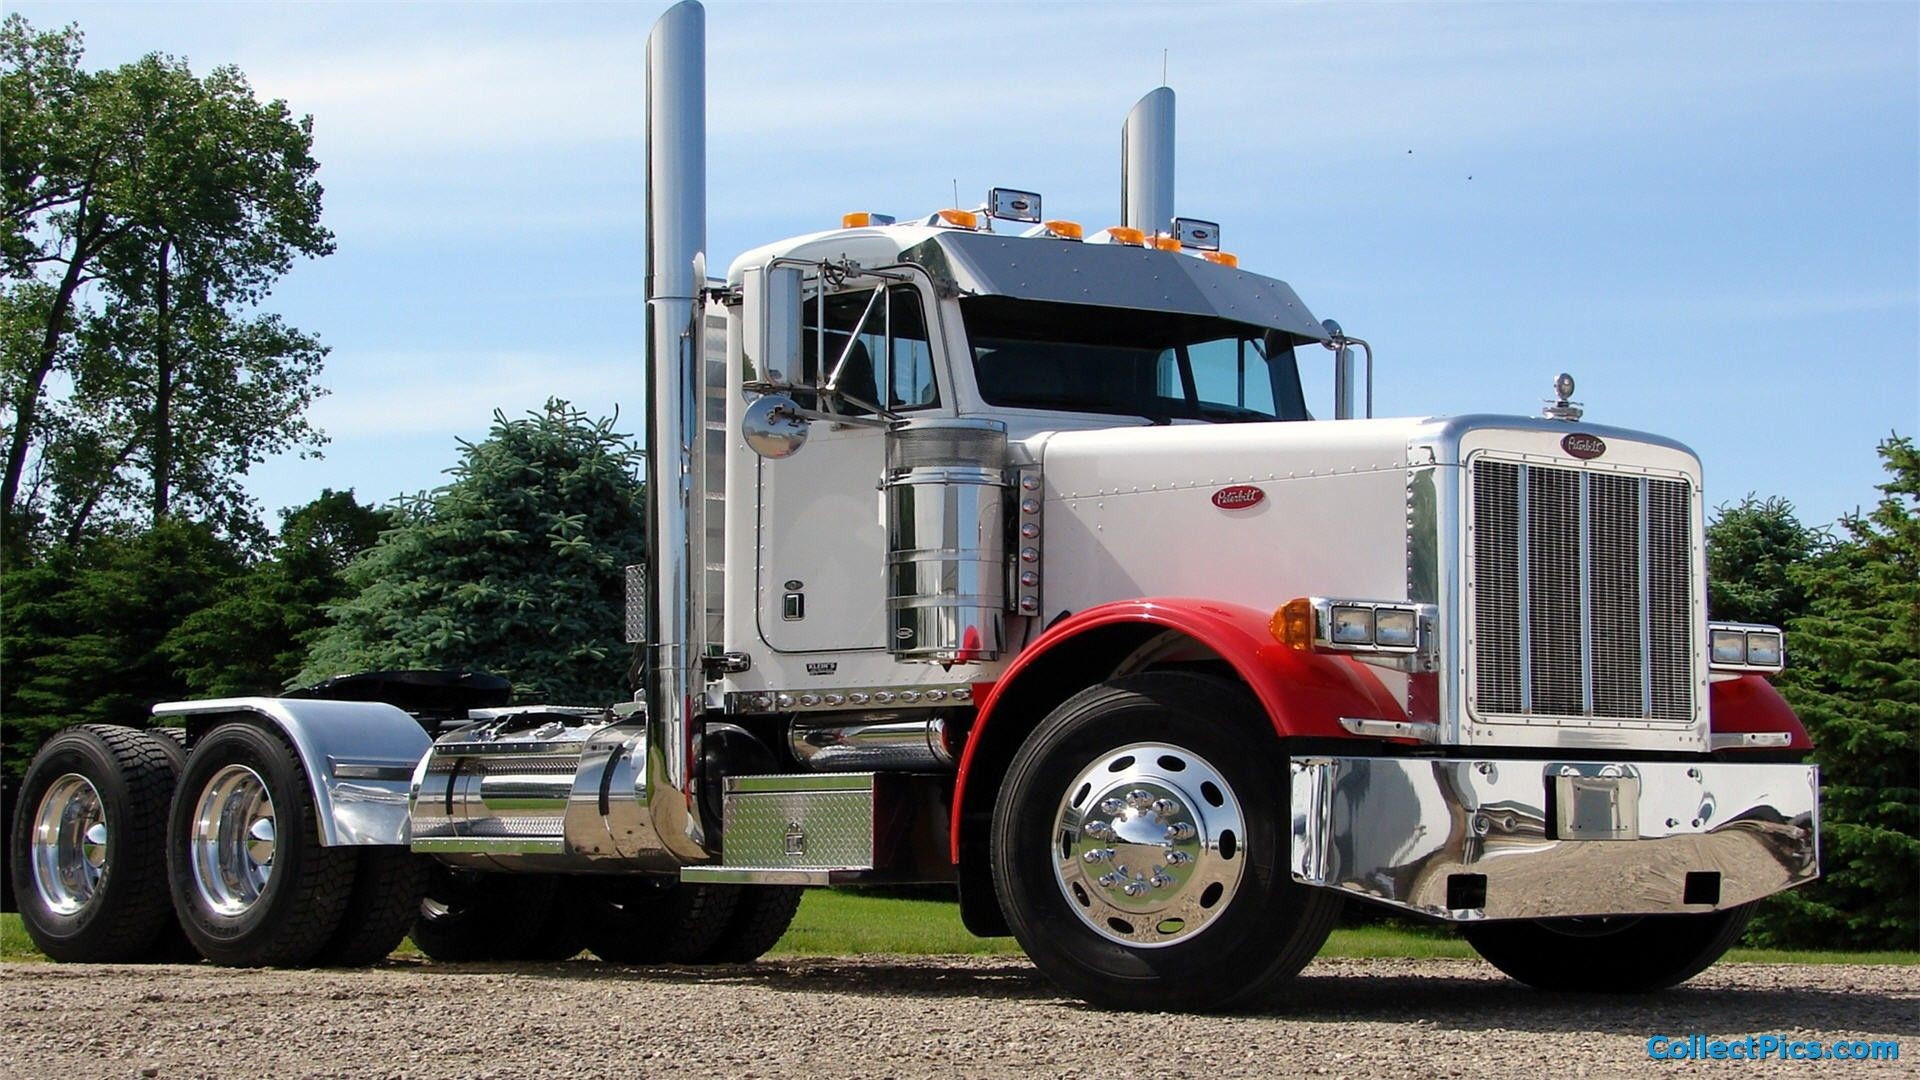 1920x1080 Peterbilt Truck Wallpaper HD  #4793